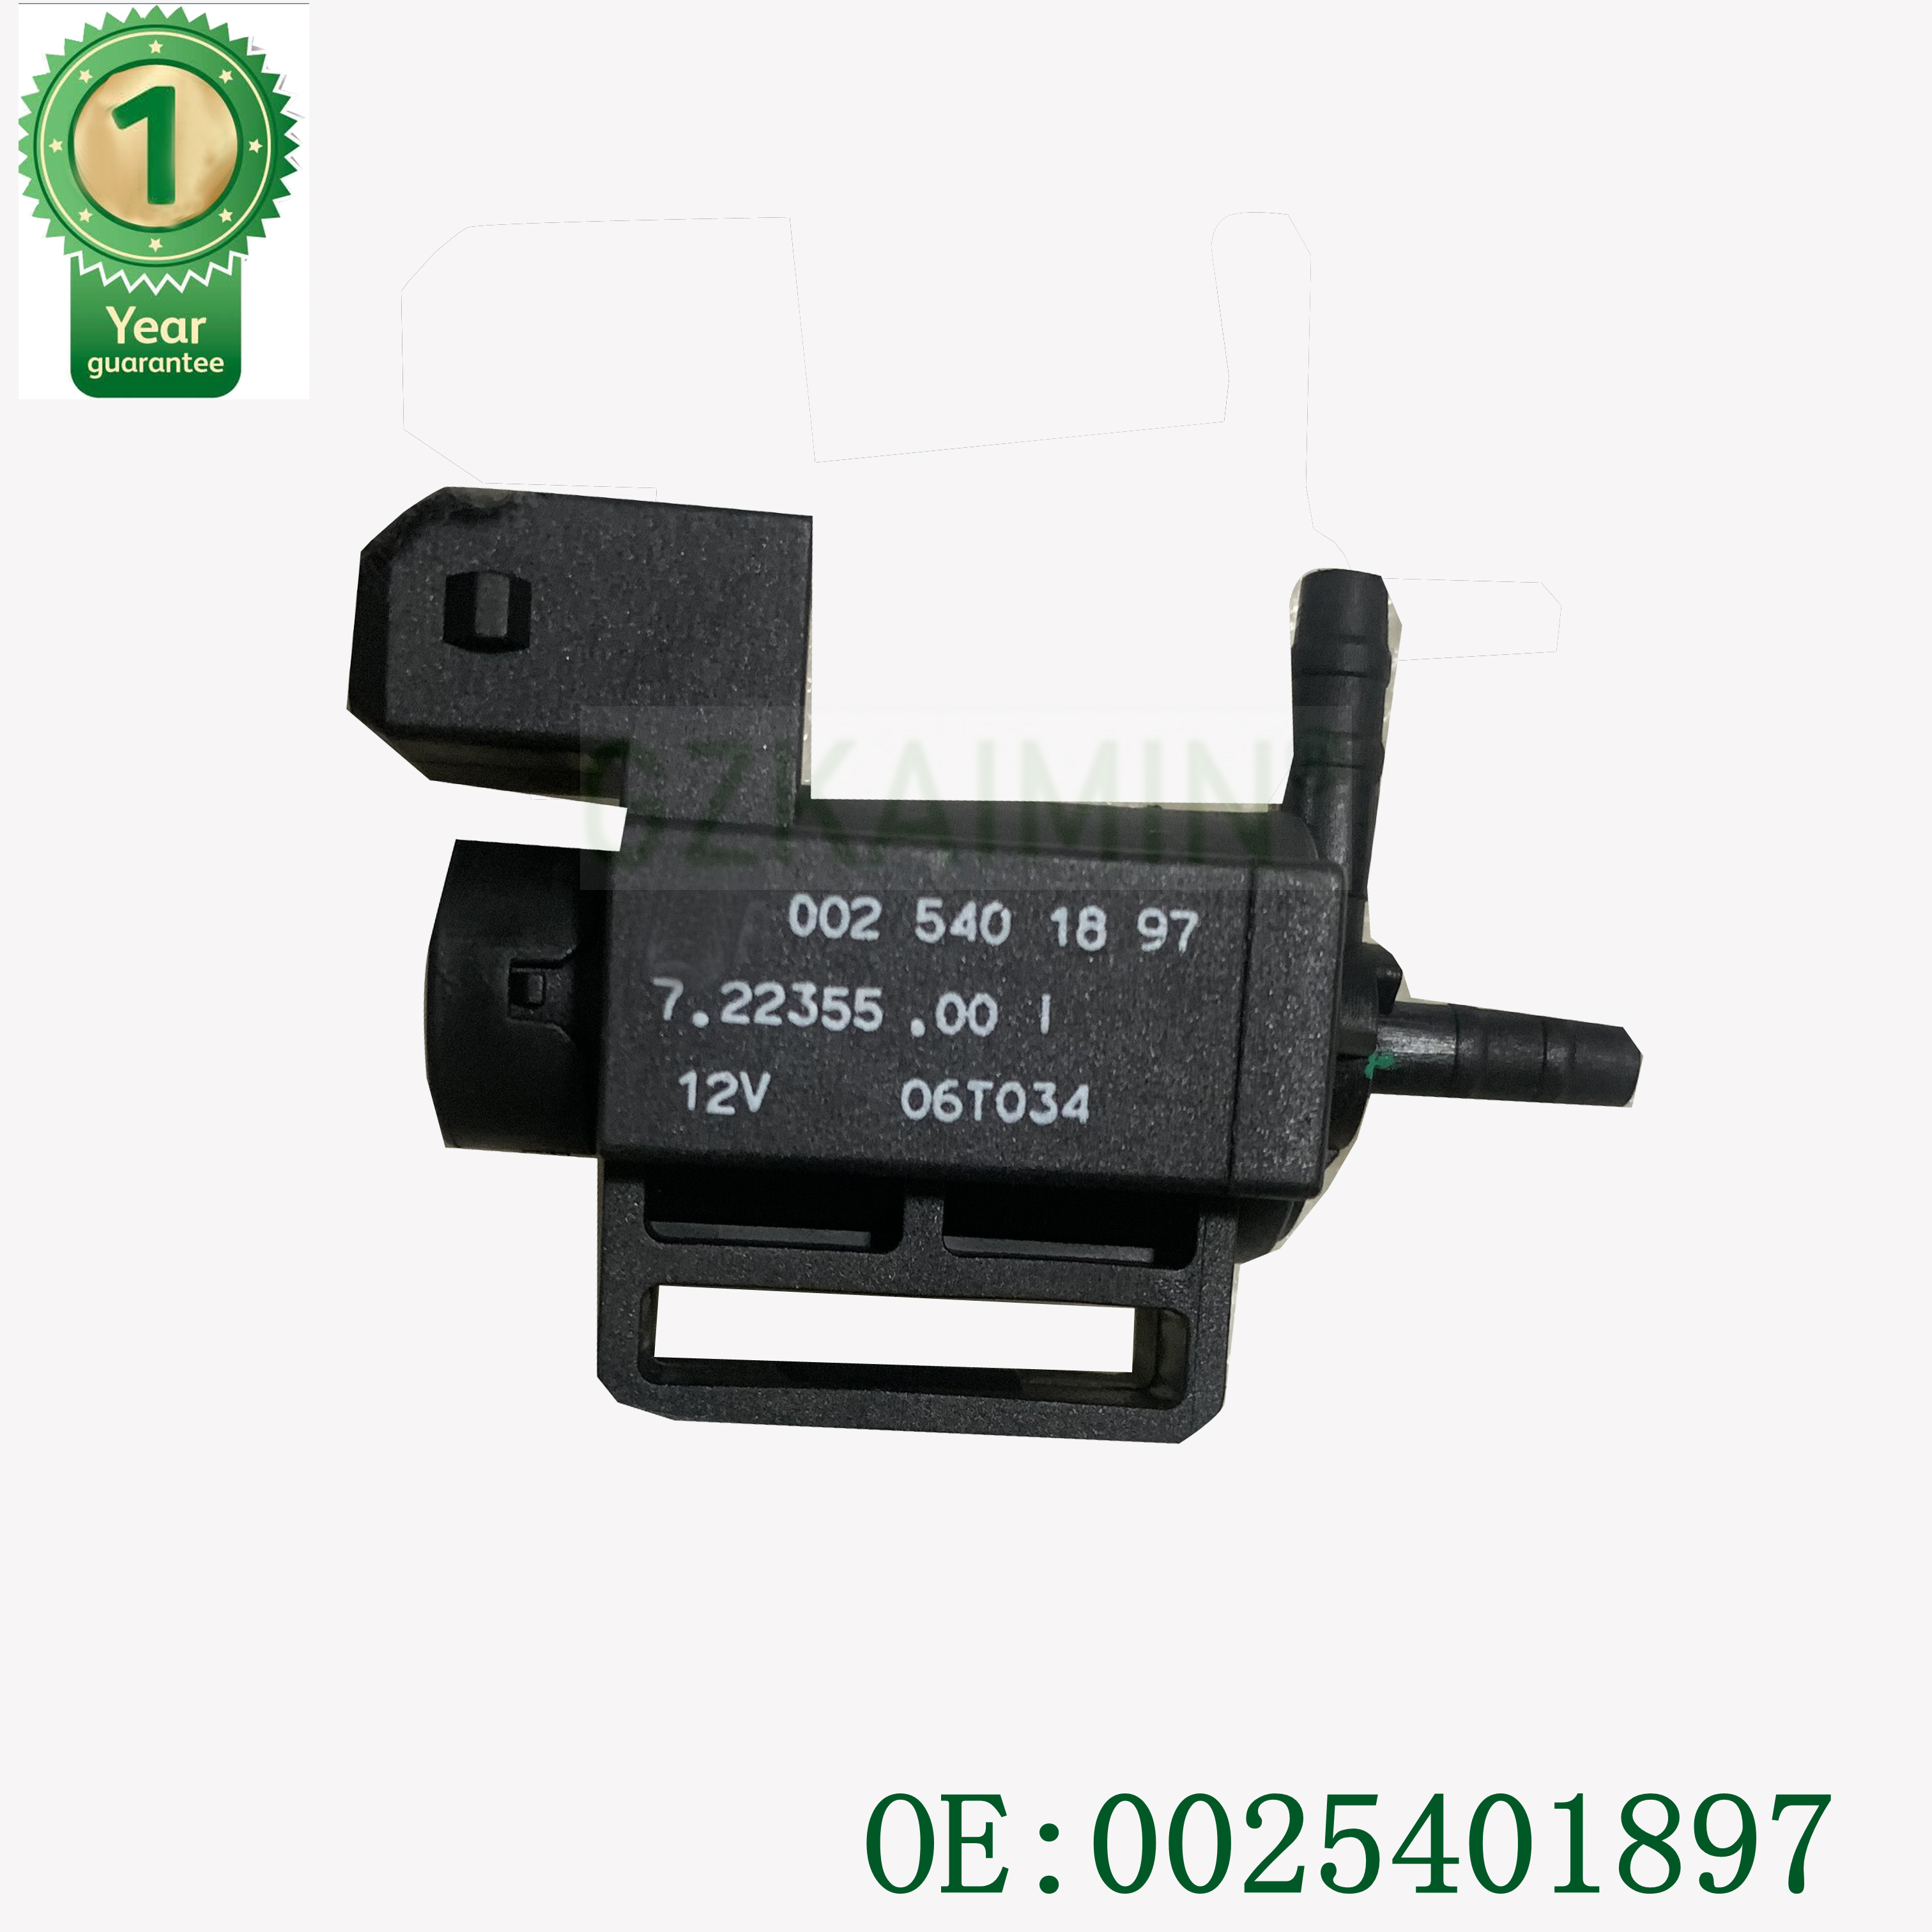 Auto <font><b>parts</b></font> genuine new EGR Vacuum Solenoid Valve OEM 0025401897 0035401897 722355010 FOR BENZ E320 <font><b>W210</b></font> image